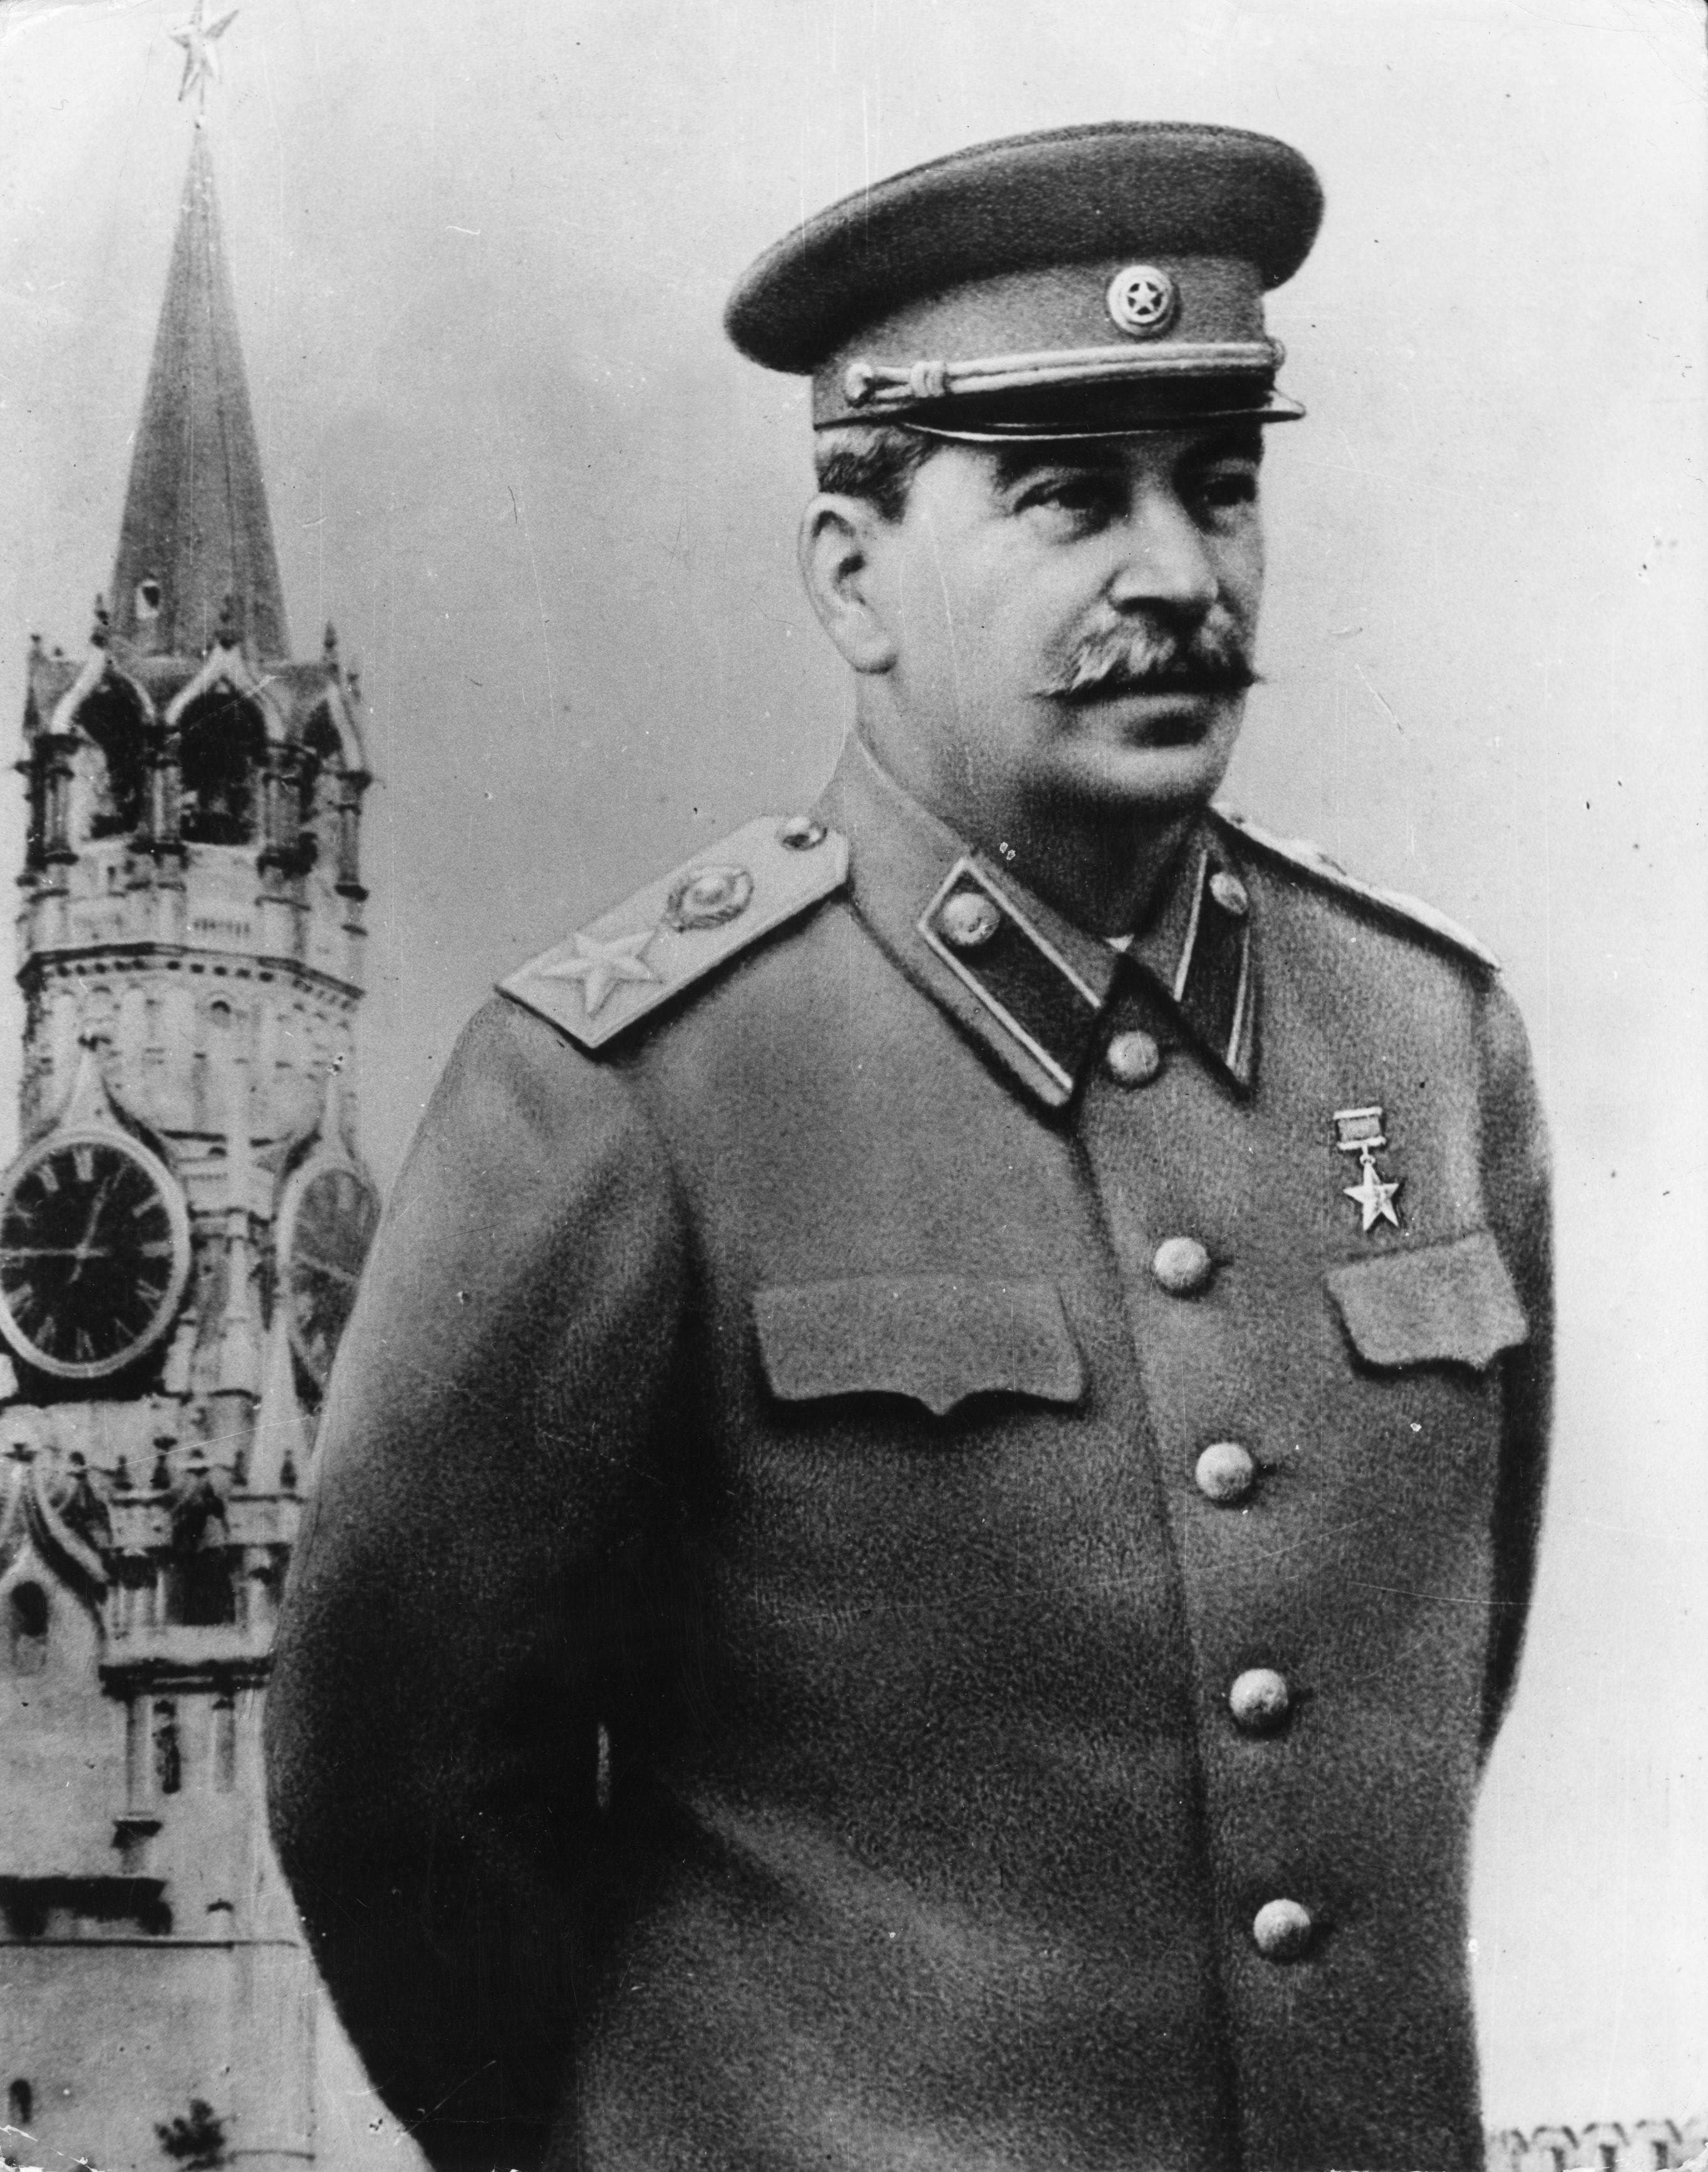 an introduction to the life and political history of joseph stalin And find homework help for other history questions at enotes  answers how  should i write an introduction for a term paper on joseph stalin's foreign policy.